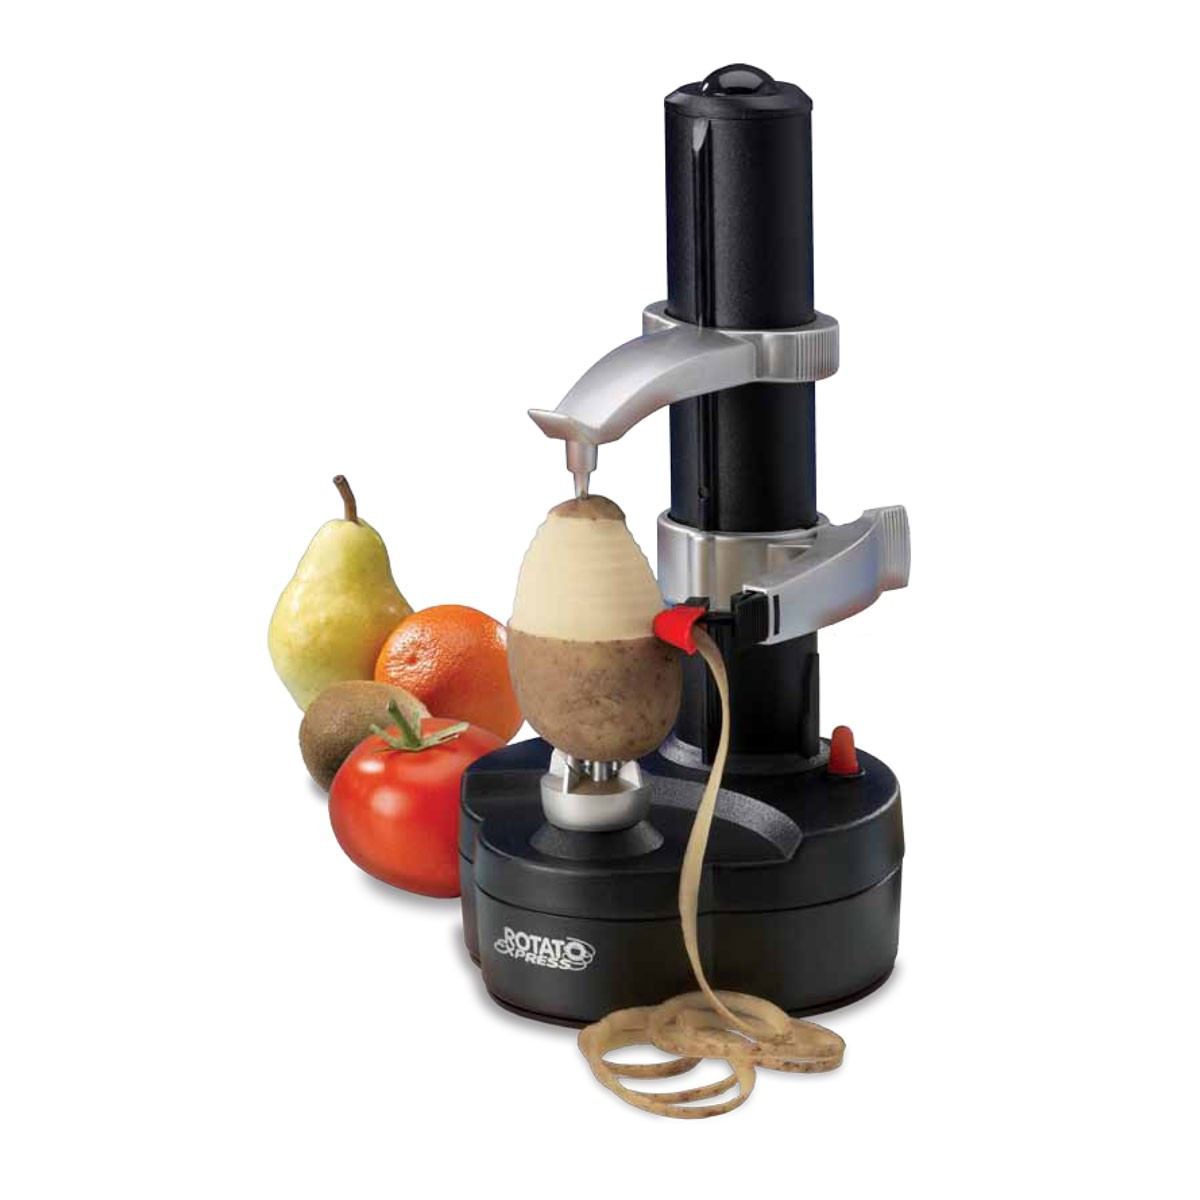 Electric Potato Peeler  8 Best Apple Peelers and Corers for Fall 2017 Apple and